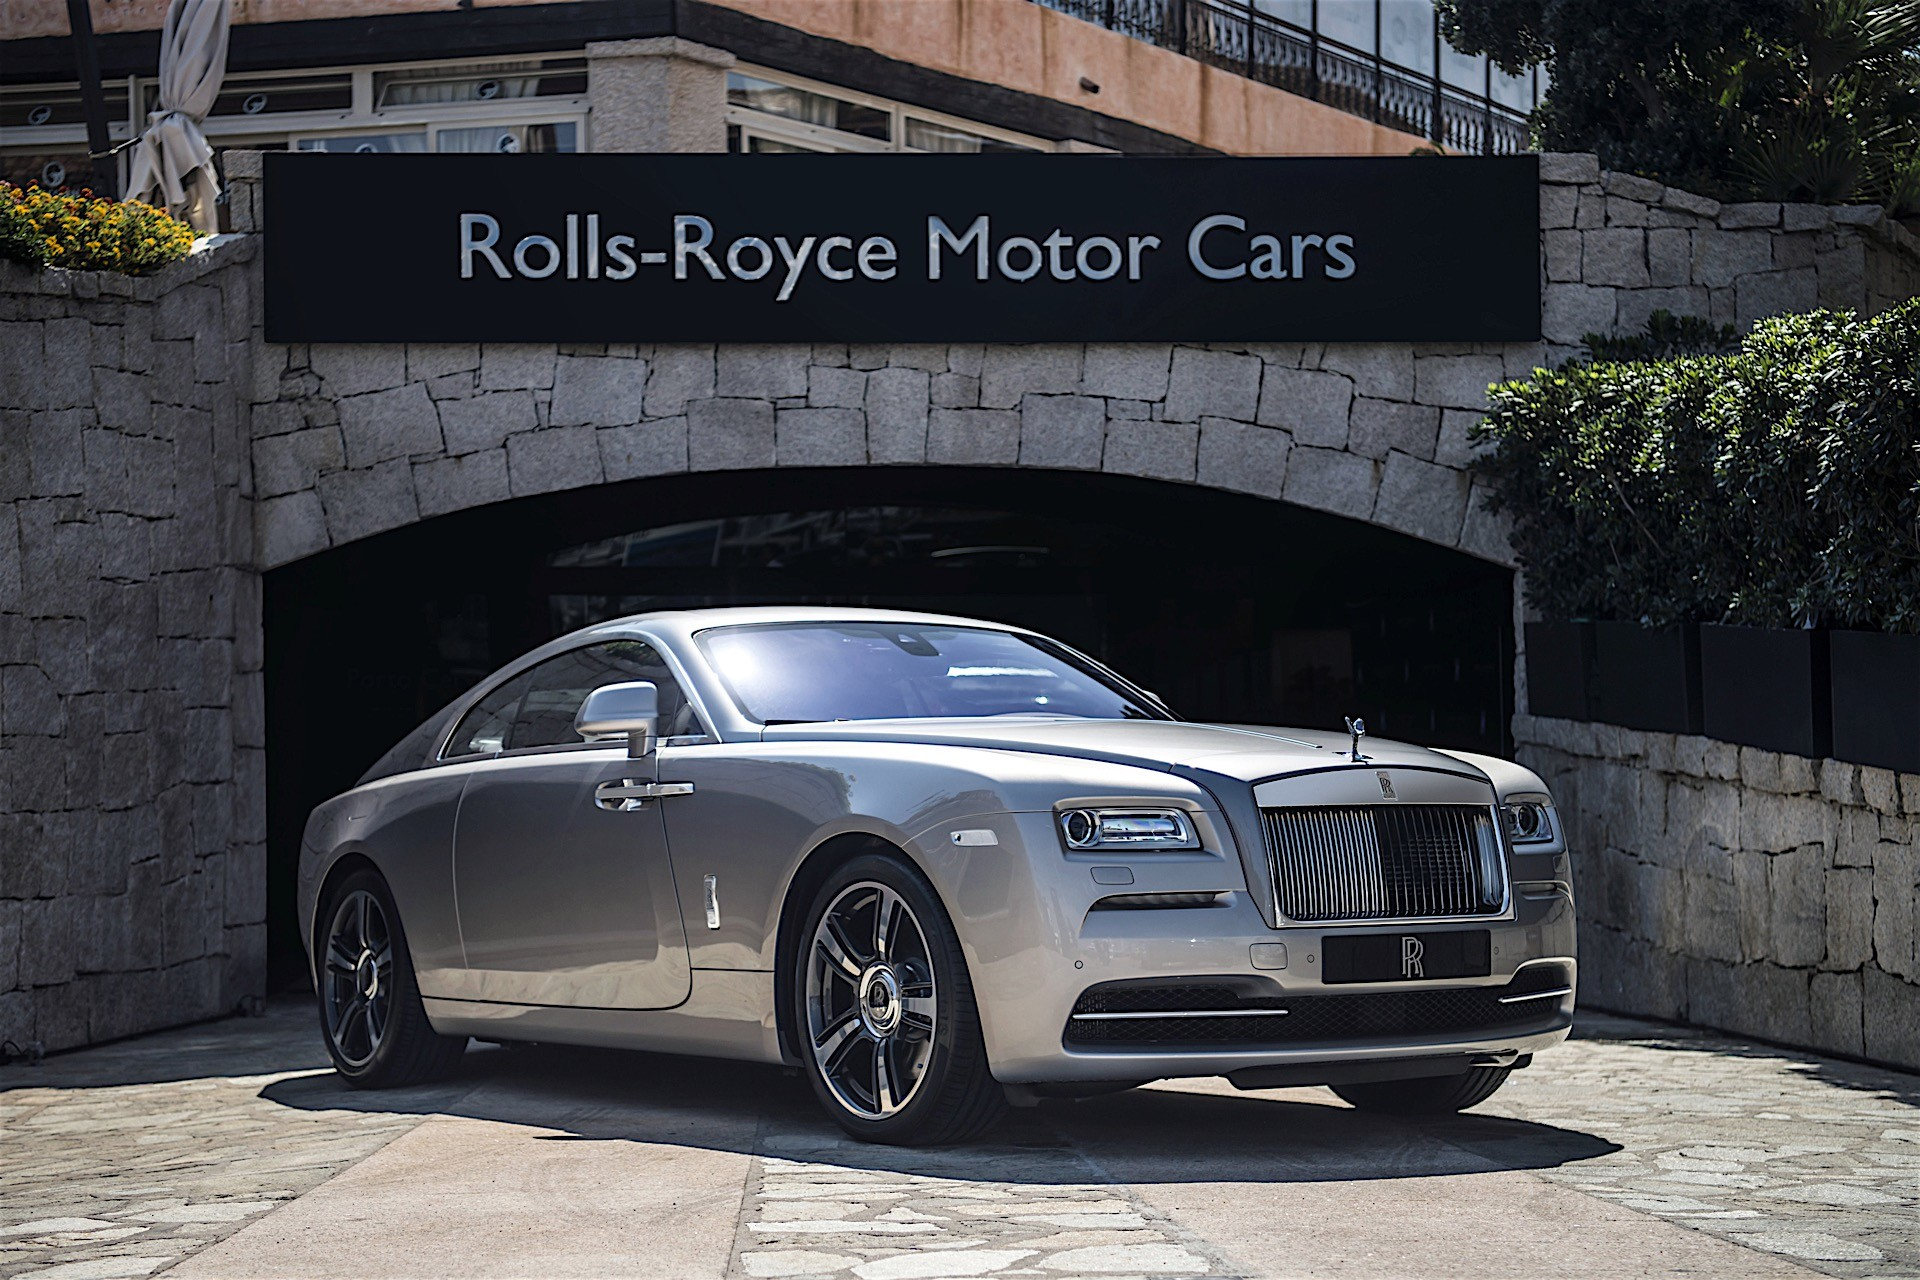 Seattle Seahawks' Kam Chancellor Gets Forgiato Wheels on his Wraith - autoevolution